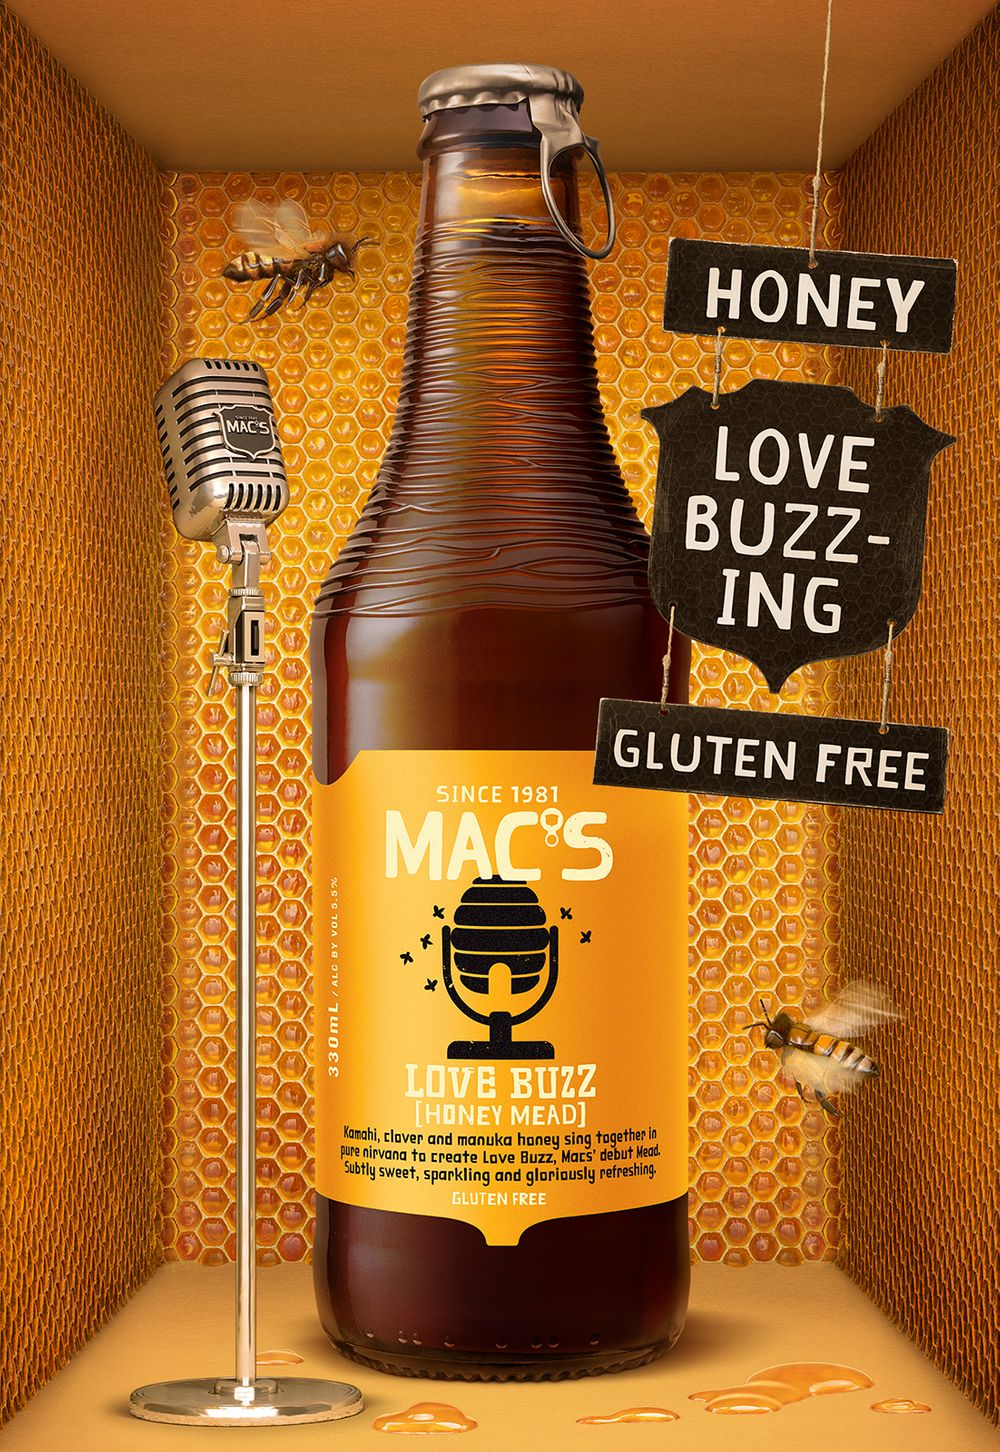 Macs Mac's Love Buzz Honey Mead